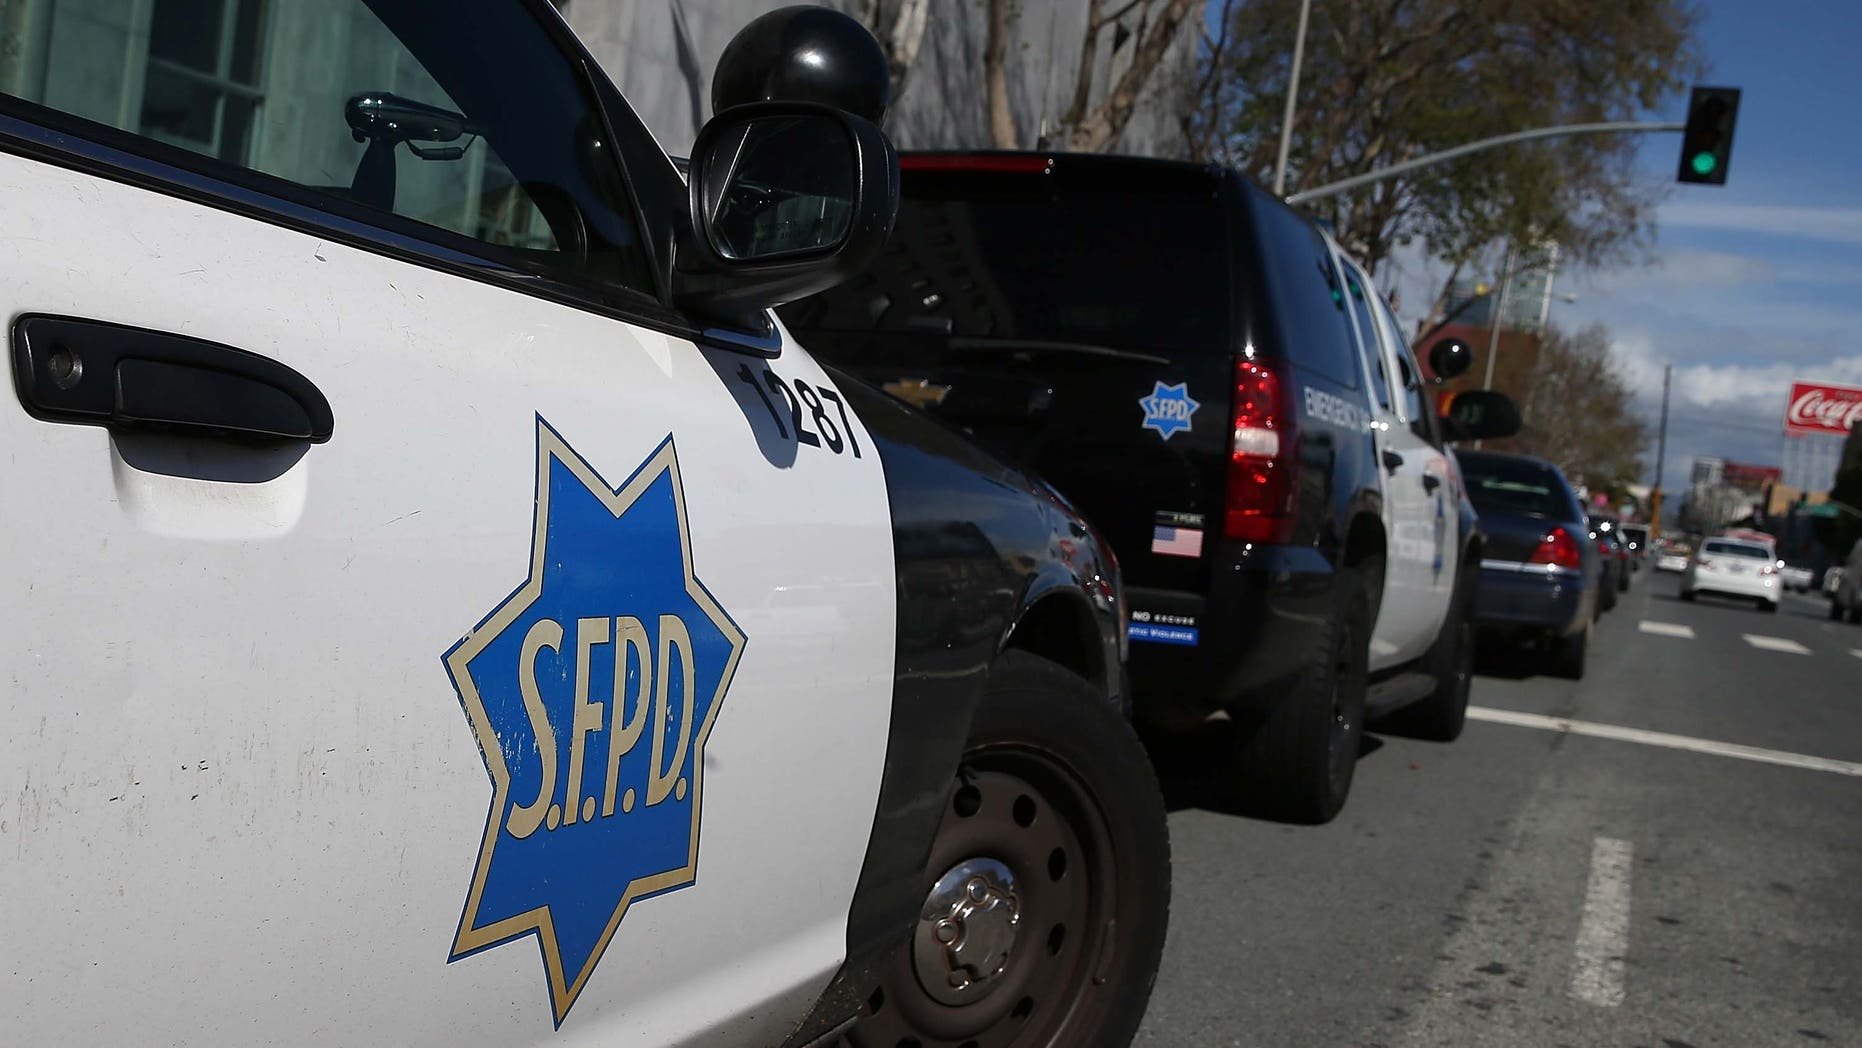 A police officer was one of six people injured Wednesday during a shootout in San Francisco.